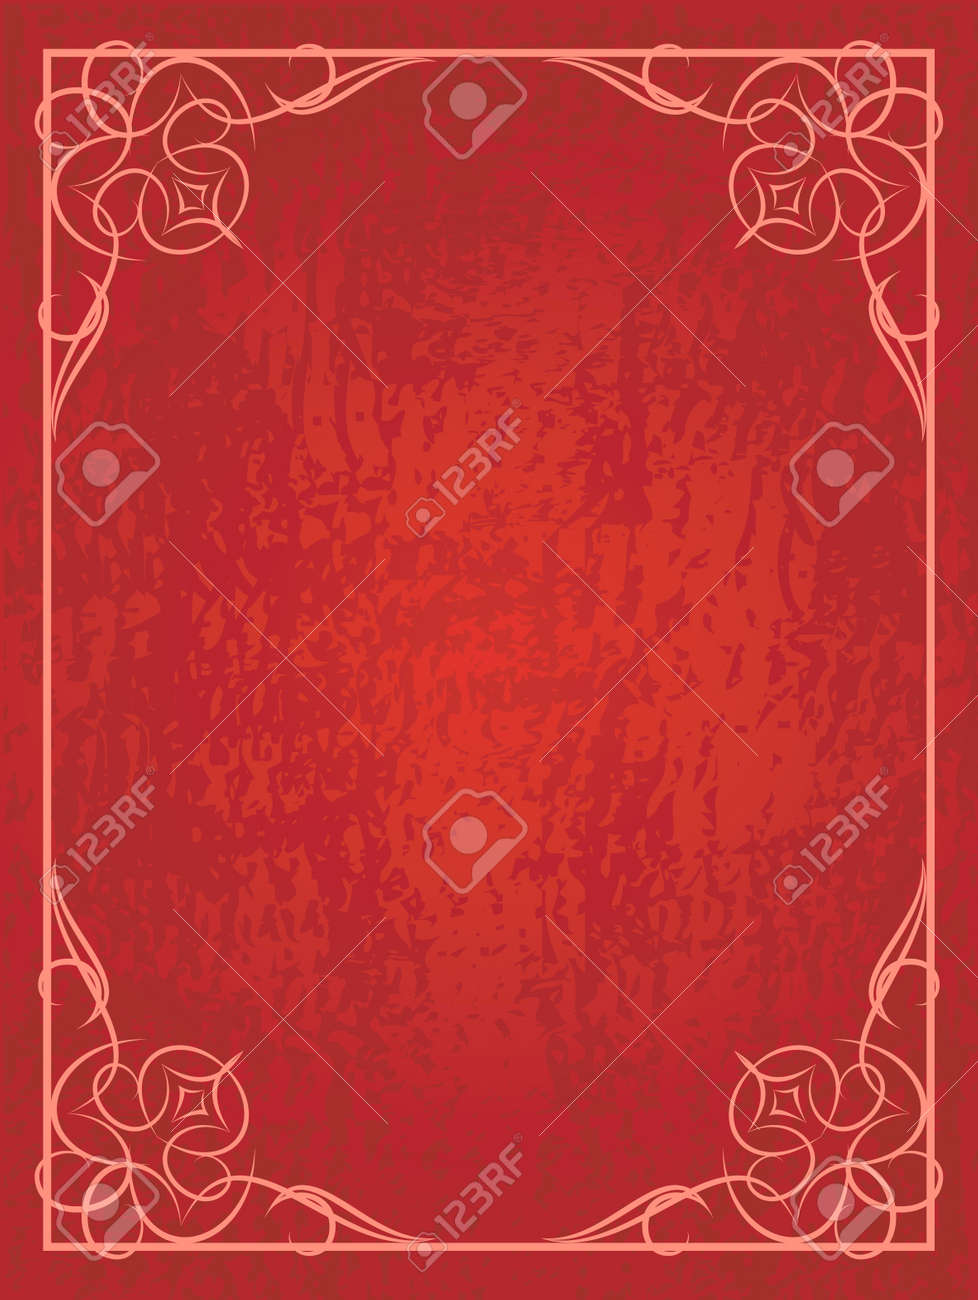 red flower background.html